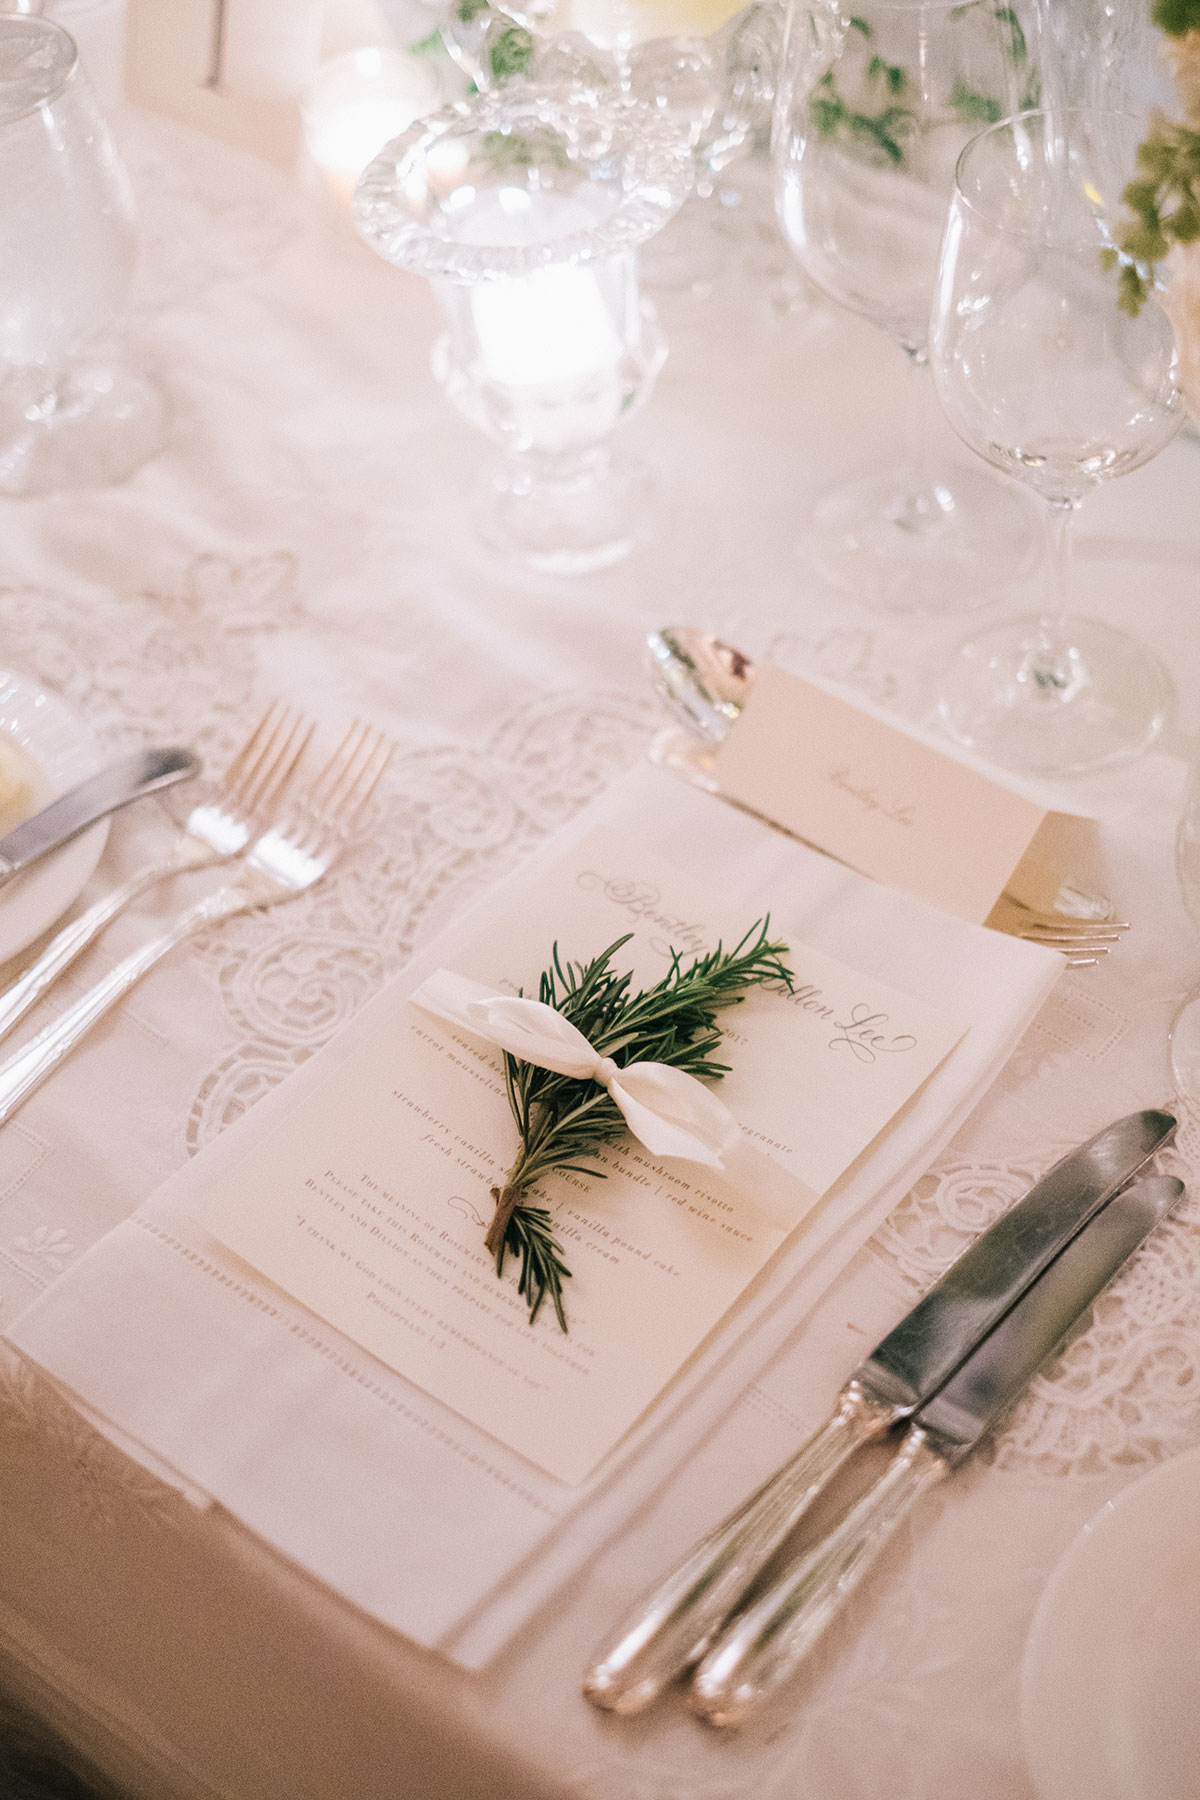 winter wedding ideas white color palette green herb sprig